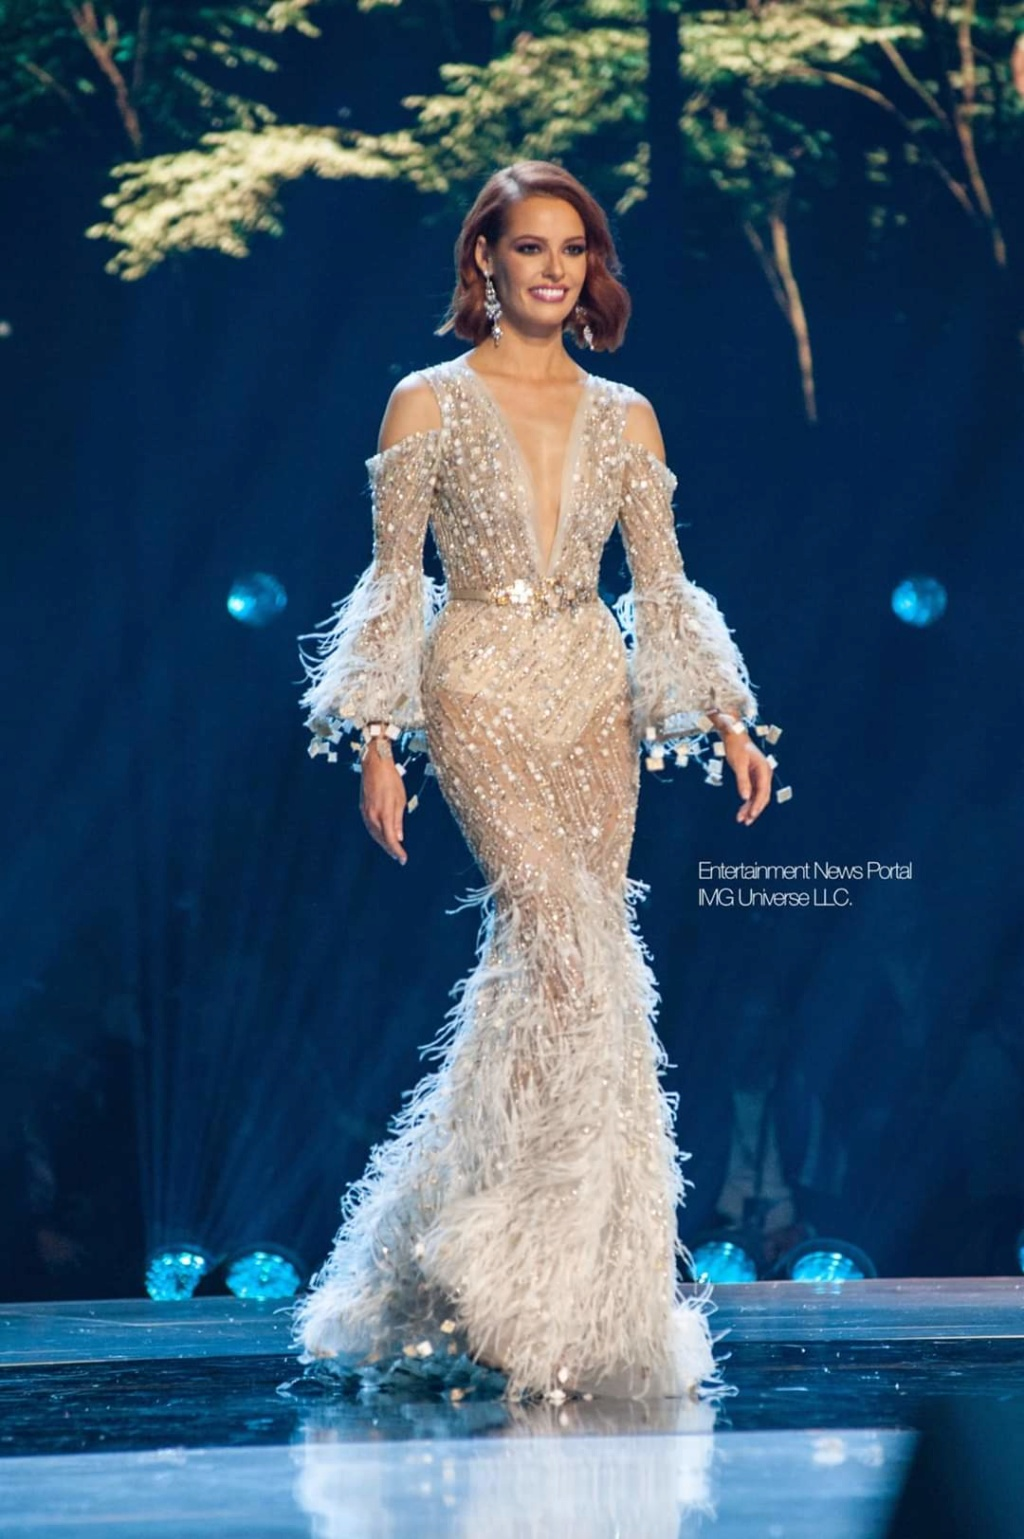 MISS UNIVERSE 2019 - OFFICIAL COVERAGE  - Page 17 Fb_14432